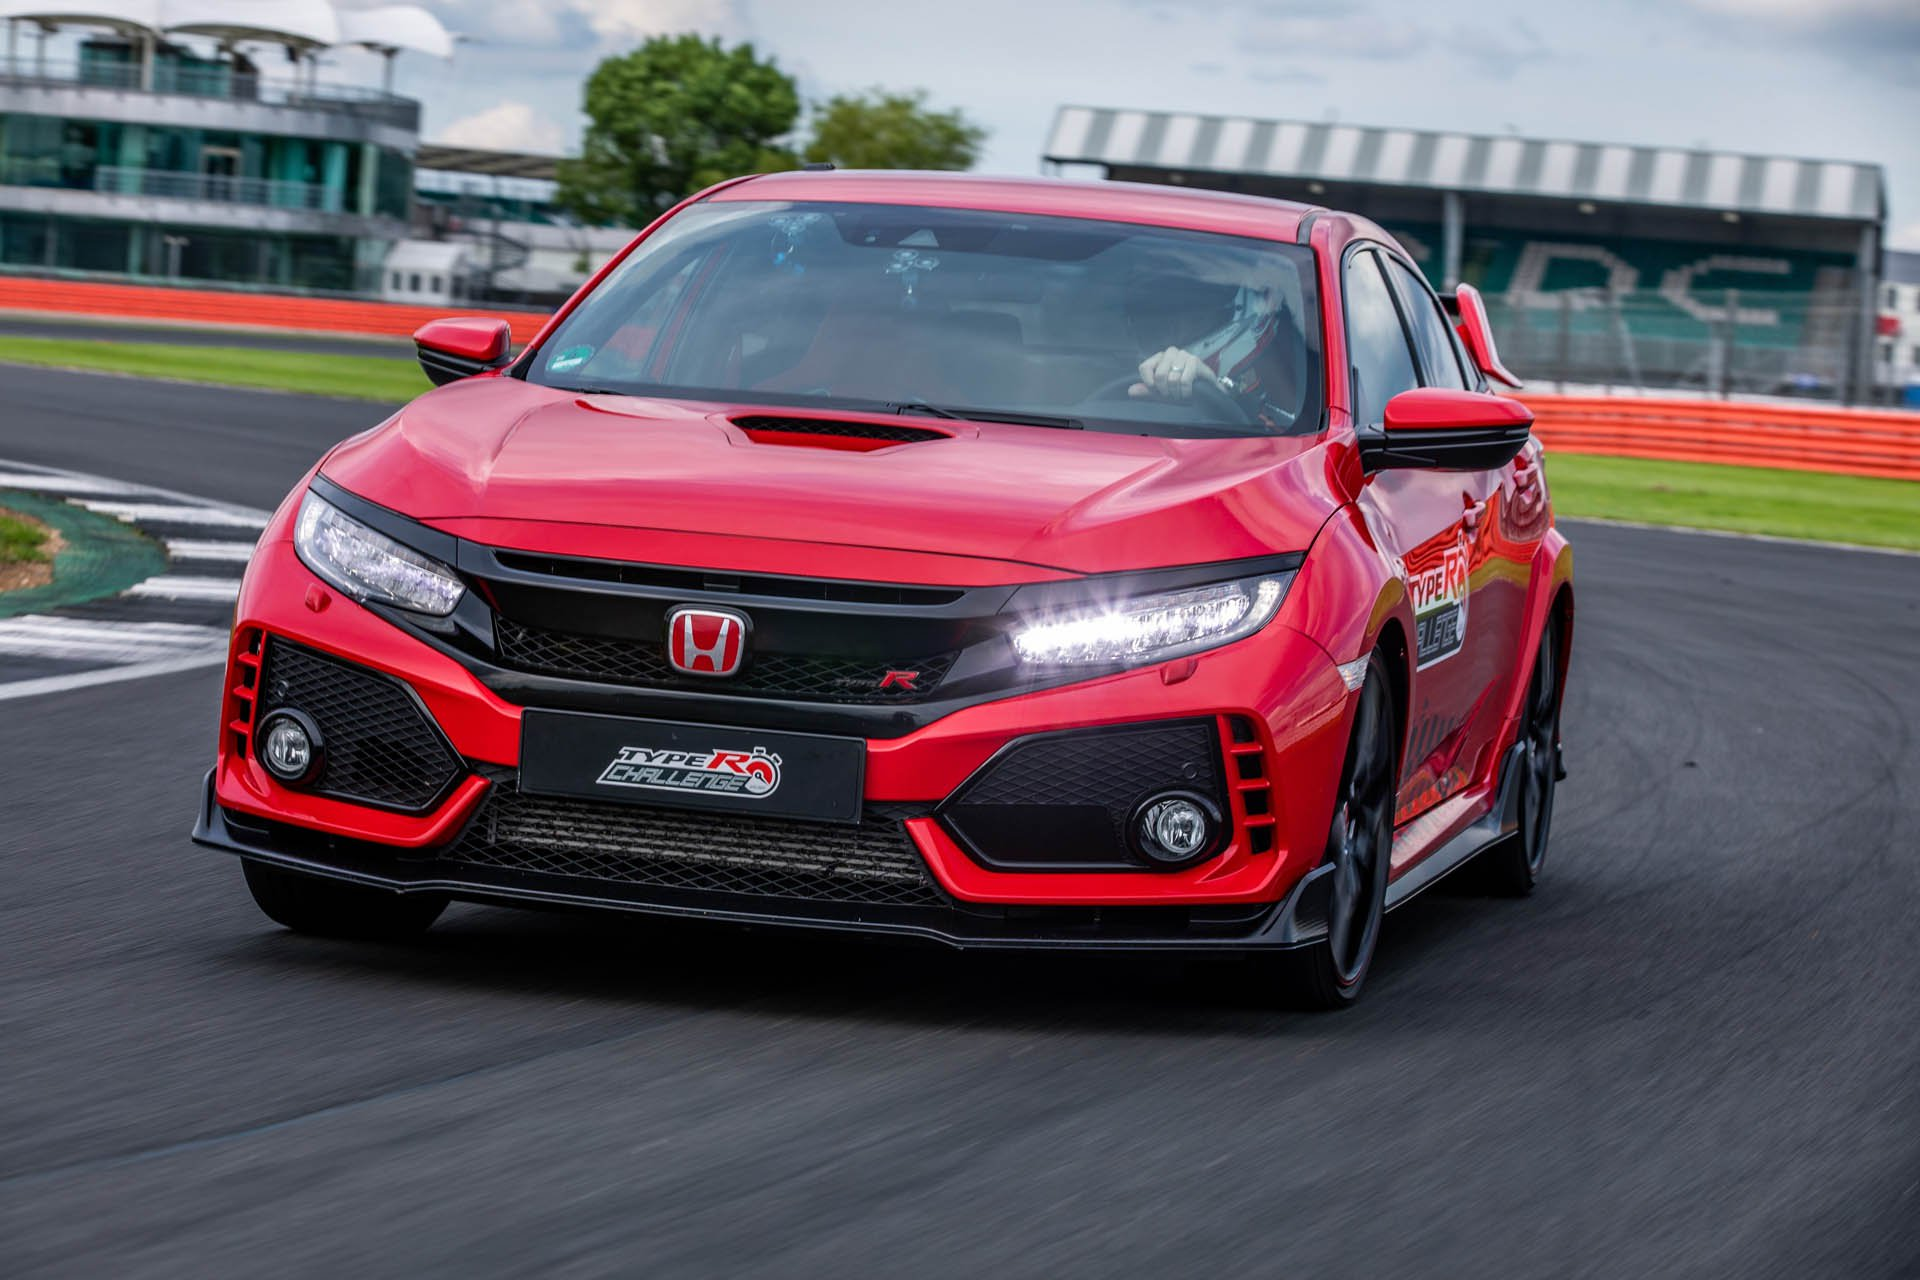 Honda Civic Type R Silverstone Record (1)